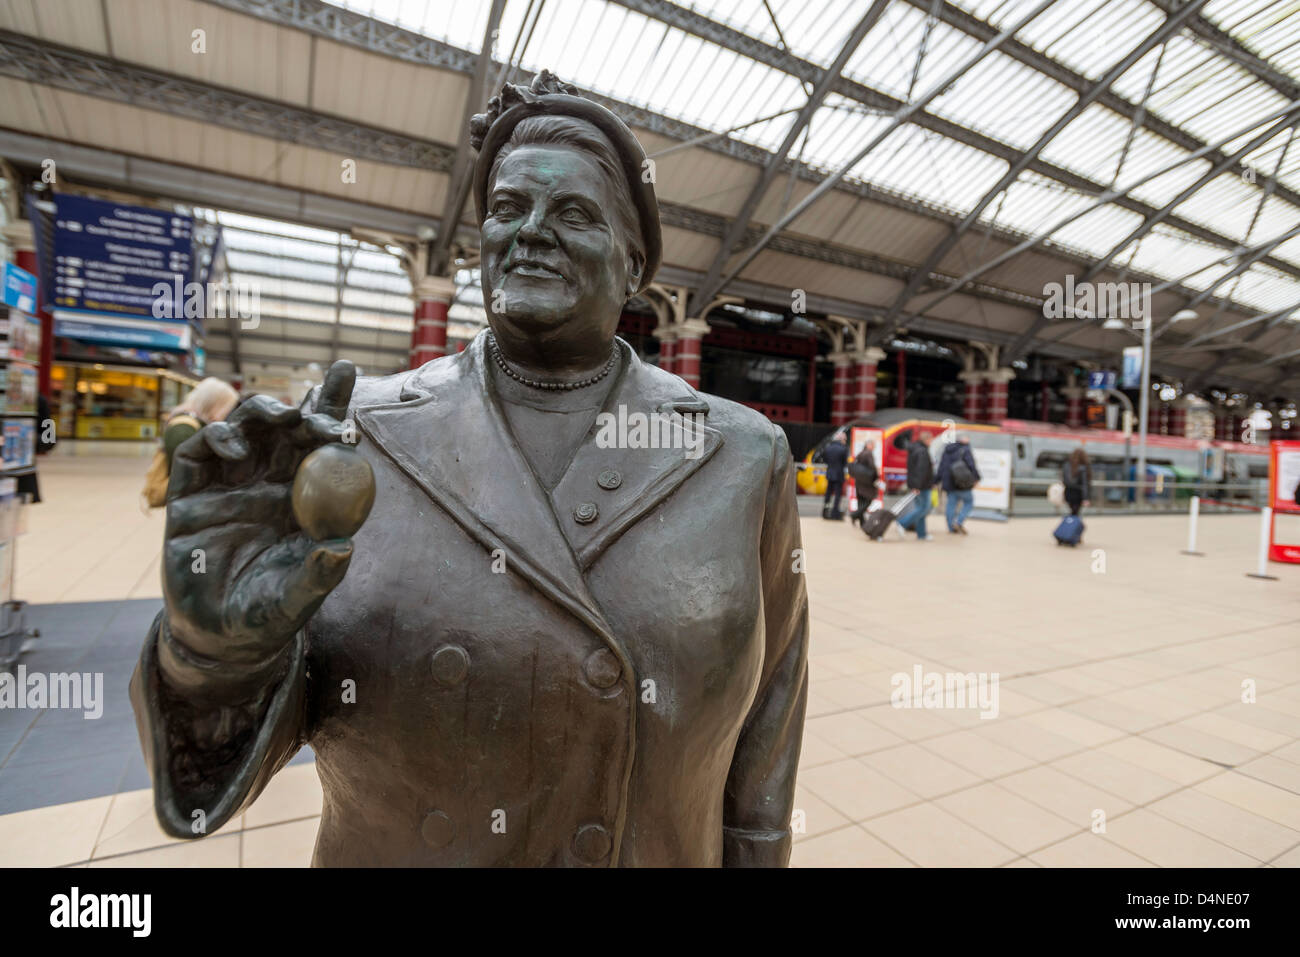 Statue of Bessie Braddock M.P. at Lime street station Liverpool by sculptor Tom Murphy. - Stock Image